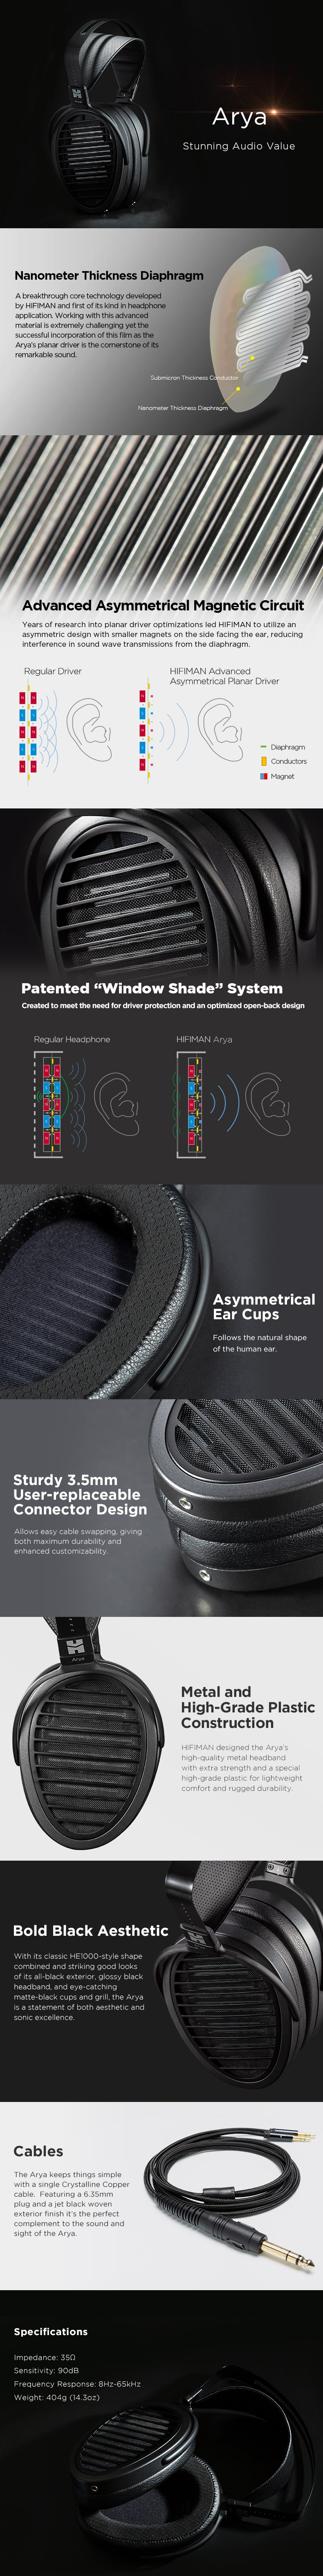 Hifiman Arya Buy Canada Description